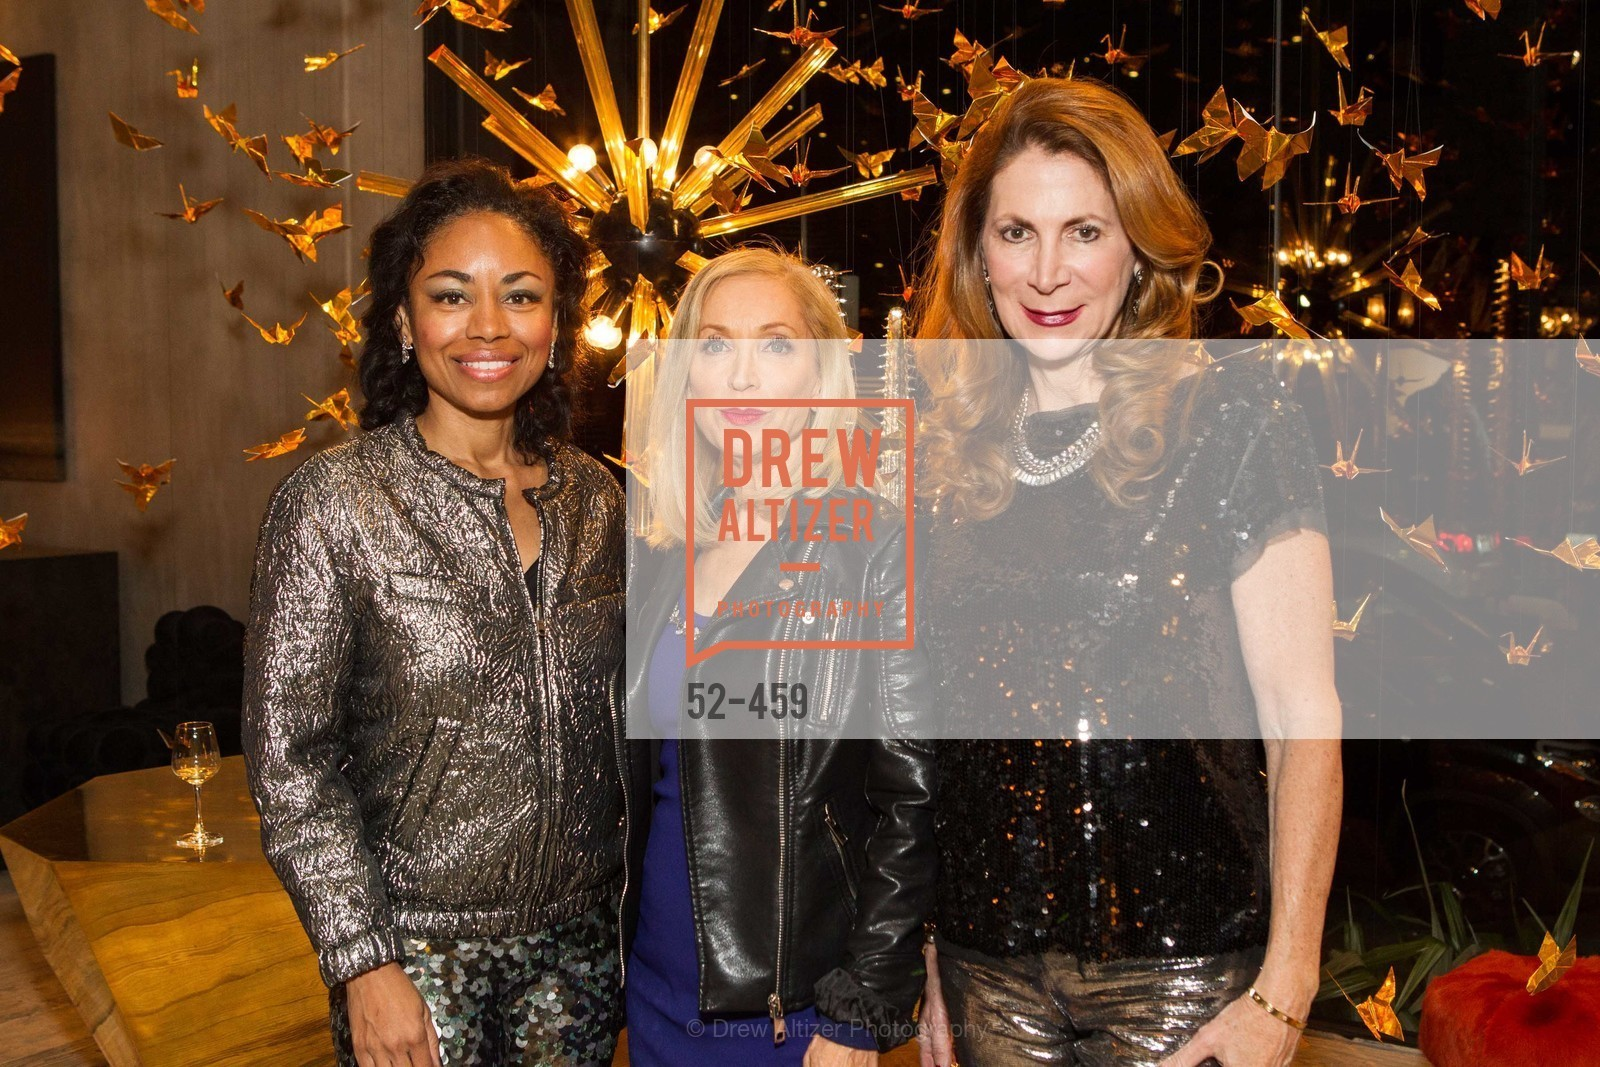 Tanya Powell, Shelley Gordon, Patricia Ferrin Loucks, 2014 SAN FRANCISCO BALLET OPENING NIGHT GALA Patron and Sponsor Reception, US. US, January 14th, 2014,Drew Altizer, Drew Altizer Photography, full-service agency, private events, San Francisco photographer, photographer california